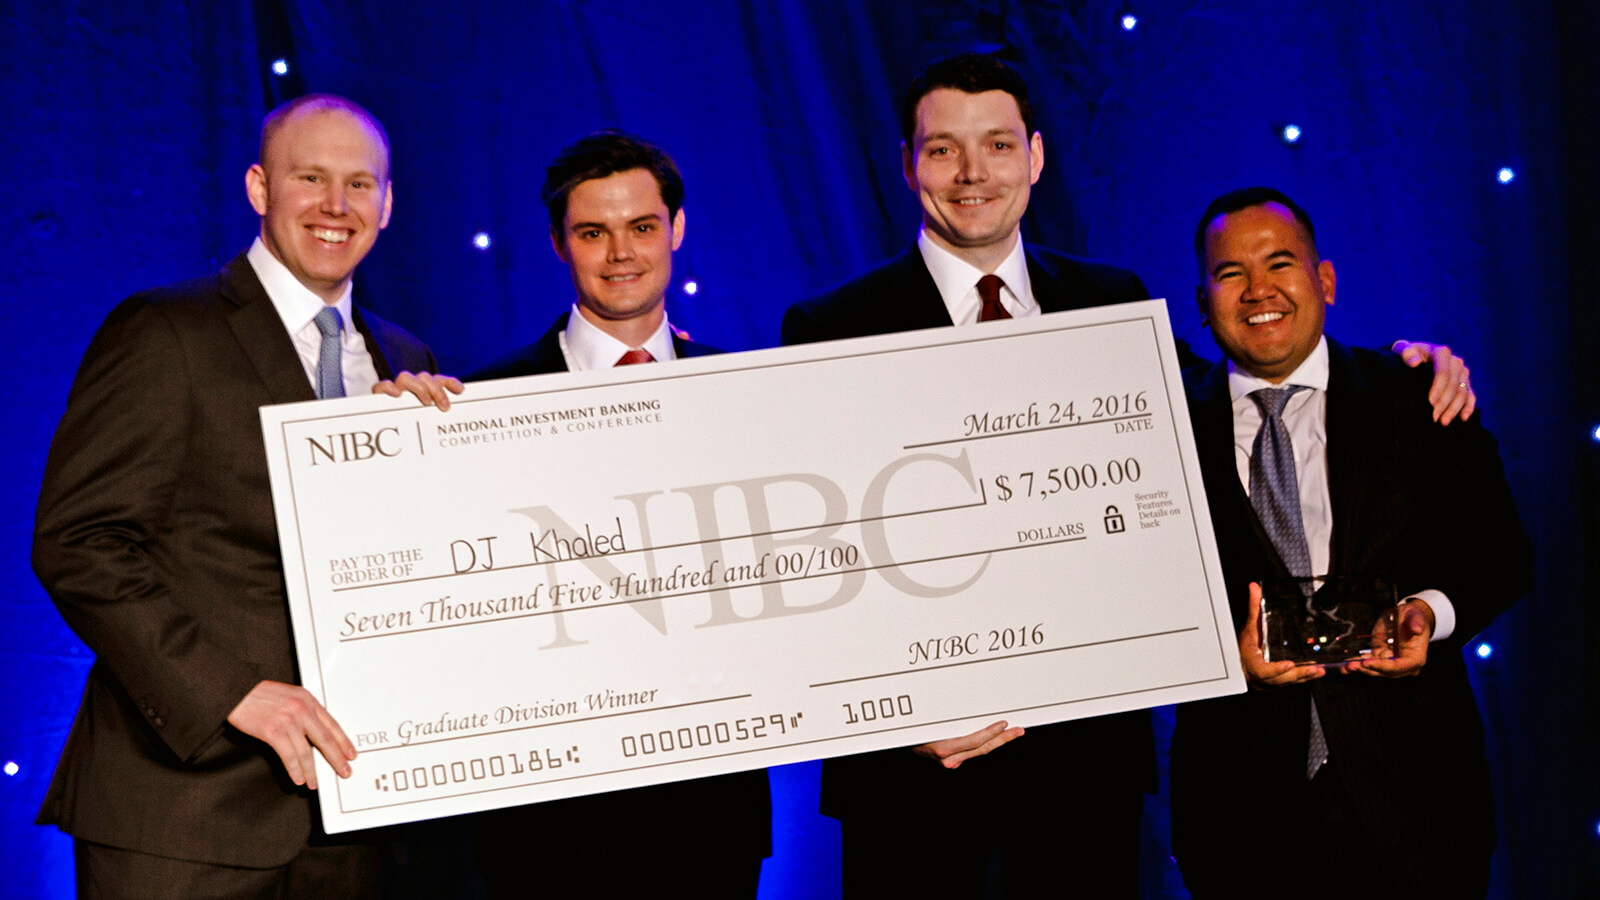 the 4 of us receiving our prize for winning the Investment Banking Competition